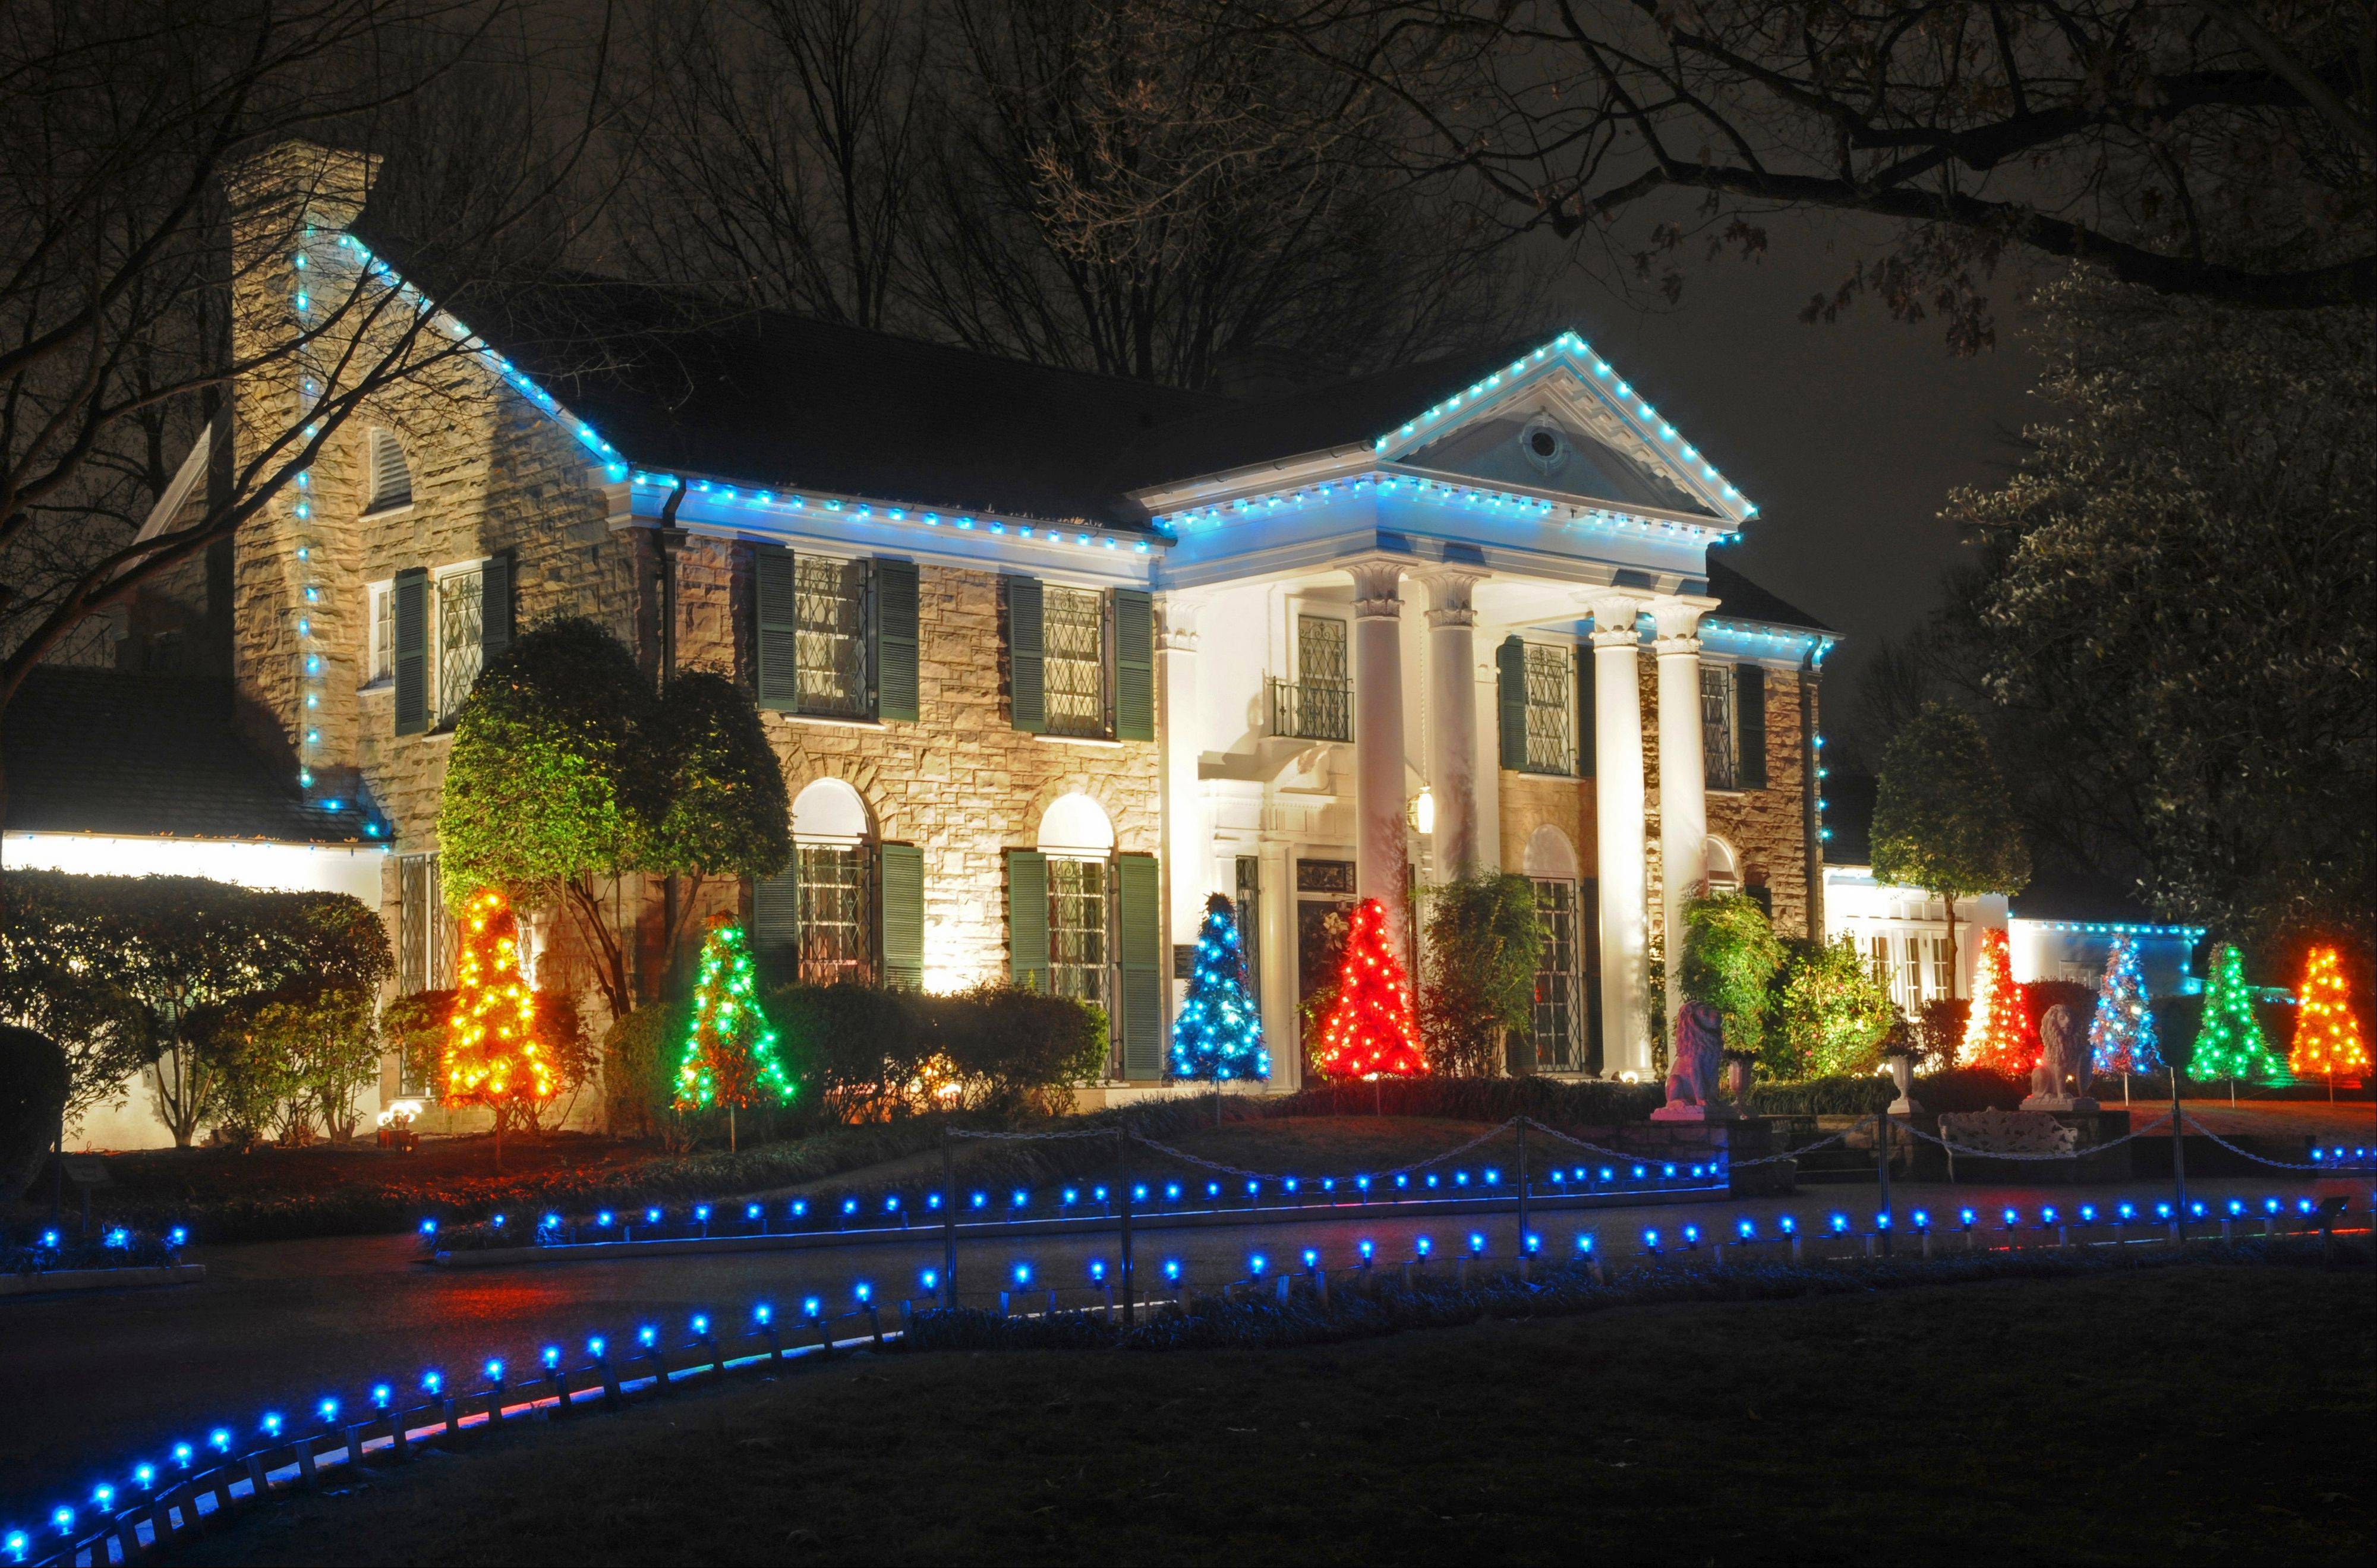 It's a blue Christmas at Elvis Presley's Memphis home, Graceland, as blue lights line the driveway.